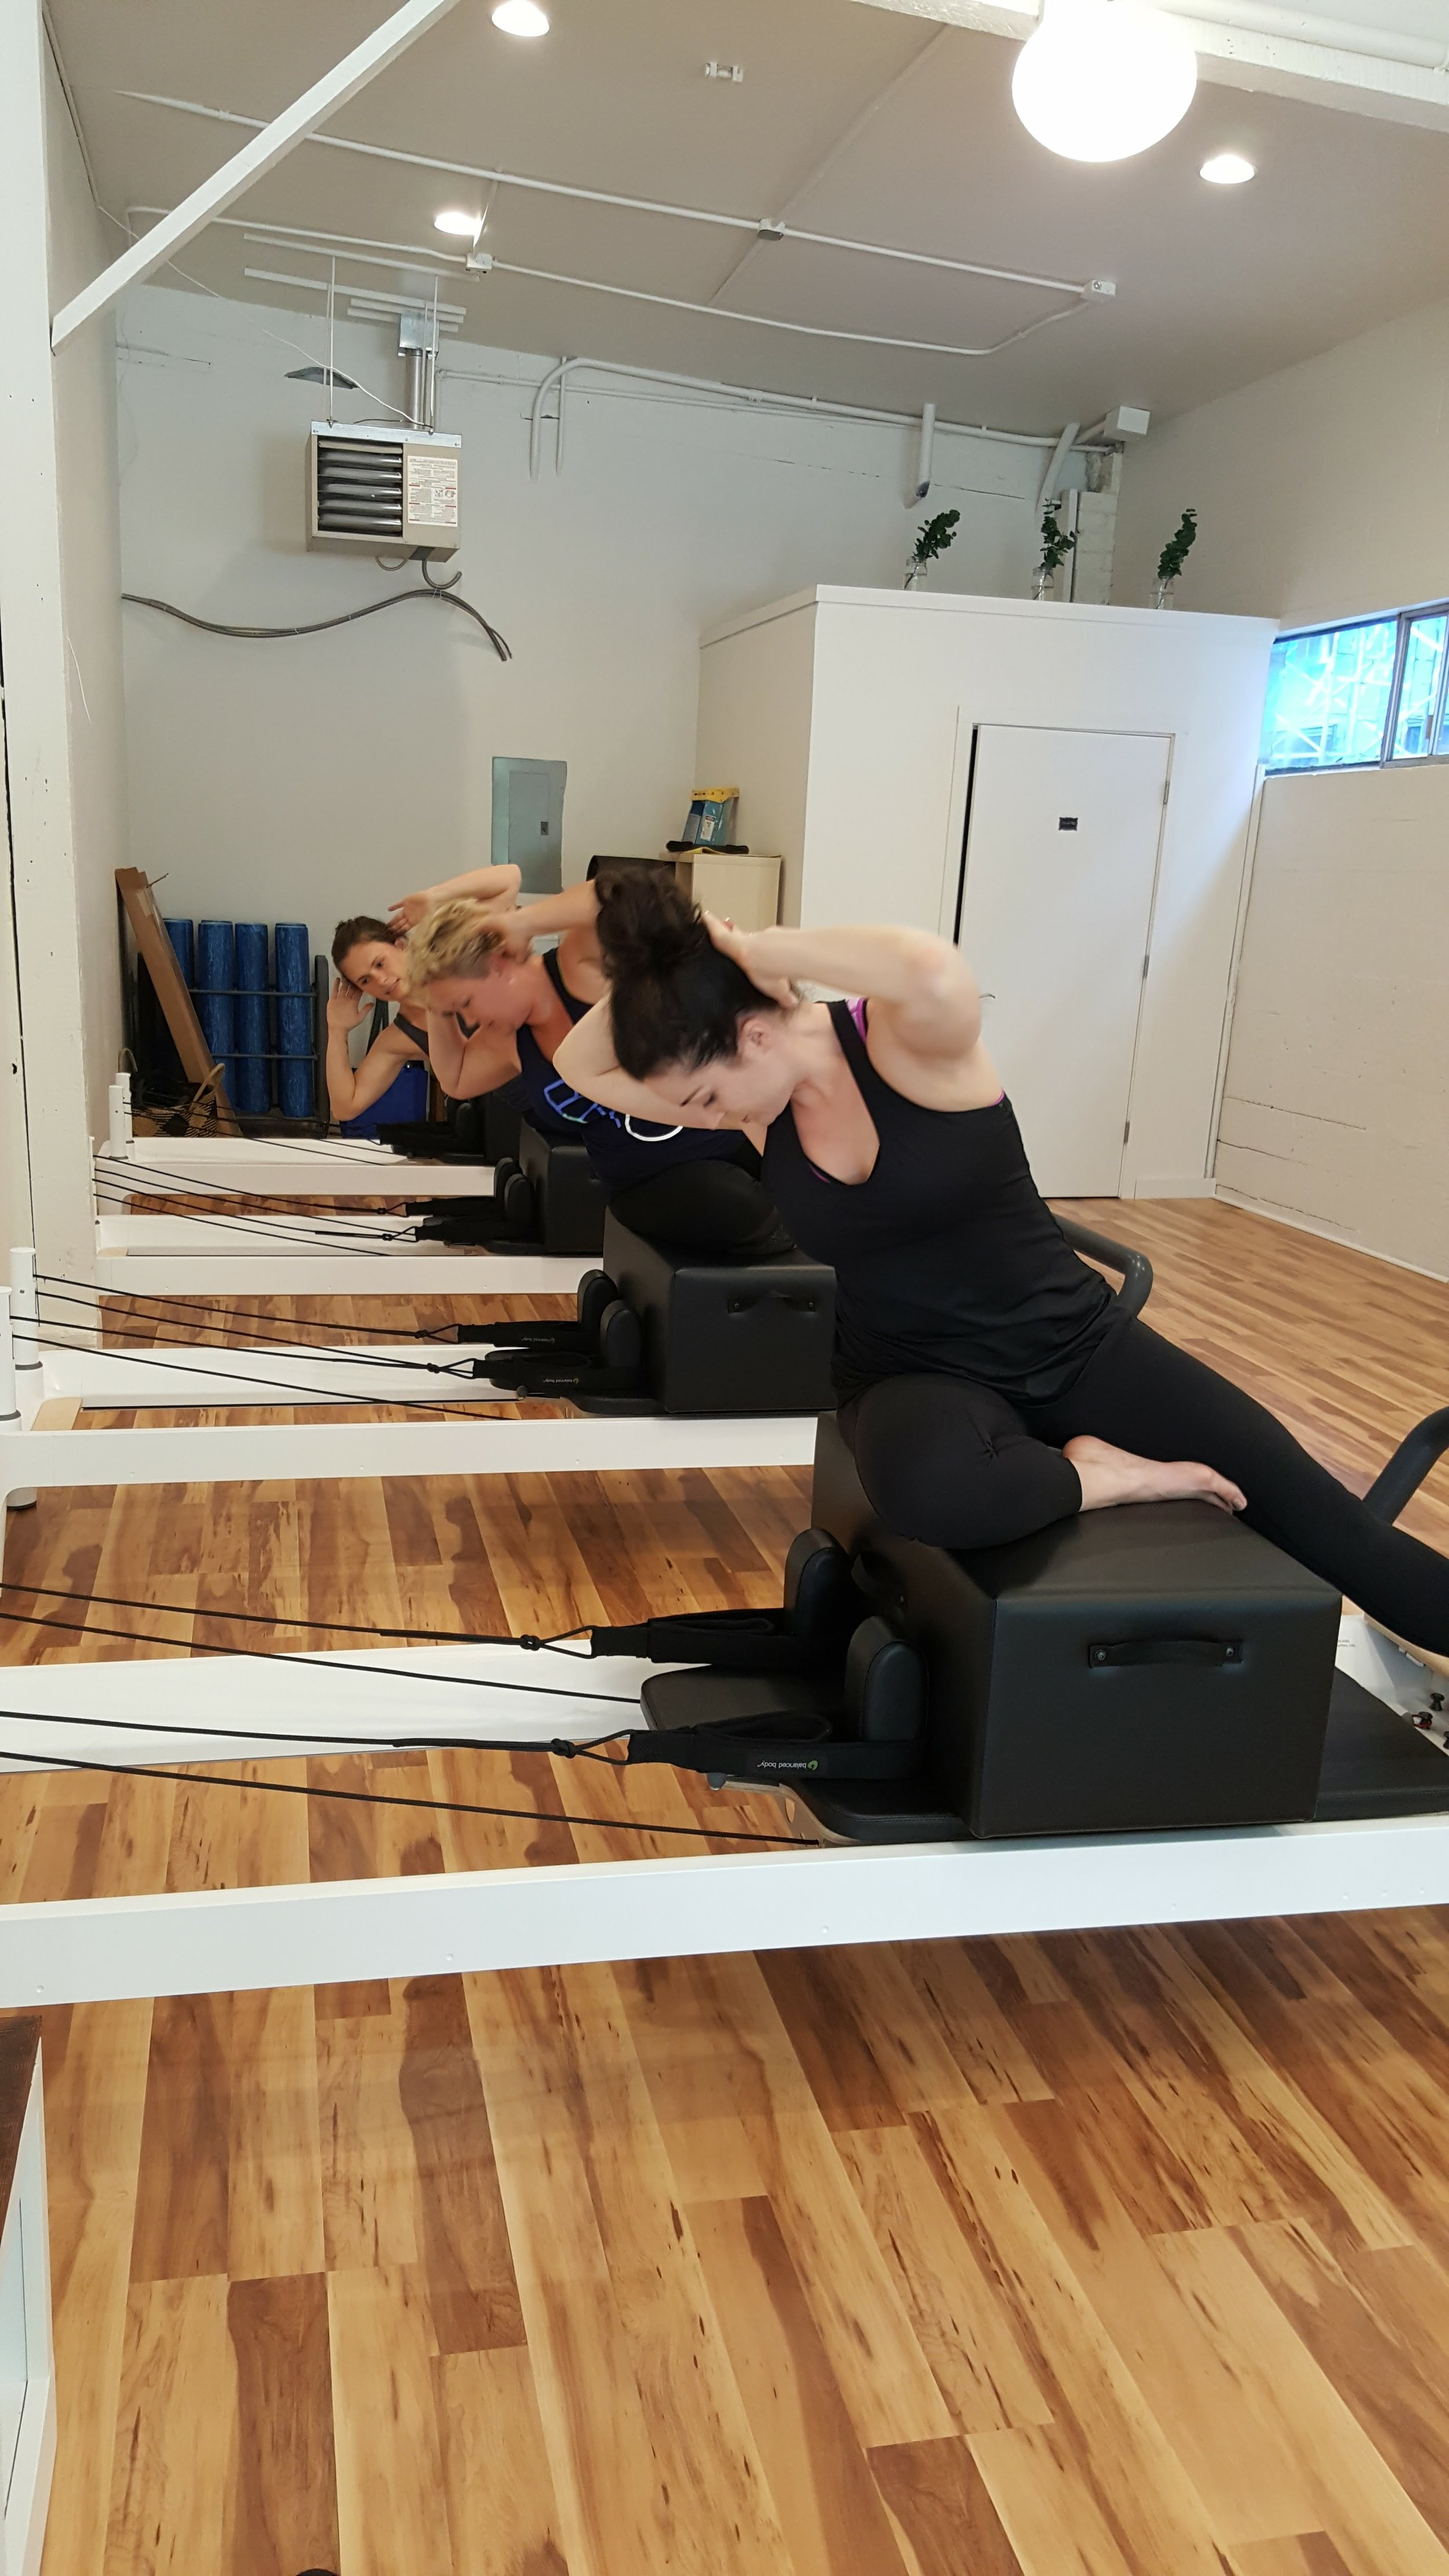 Since the newspaper article in The Gazette Times, we have been booked solid for Reformer classes and I am enjoying meeting all the new clients and building trust and relationships.